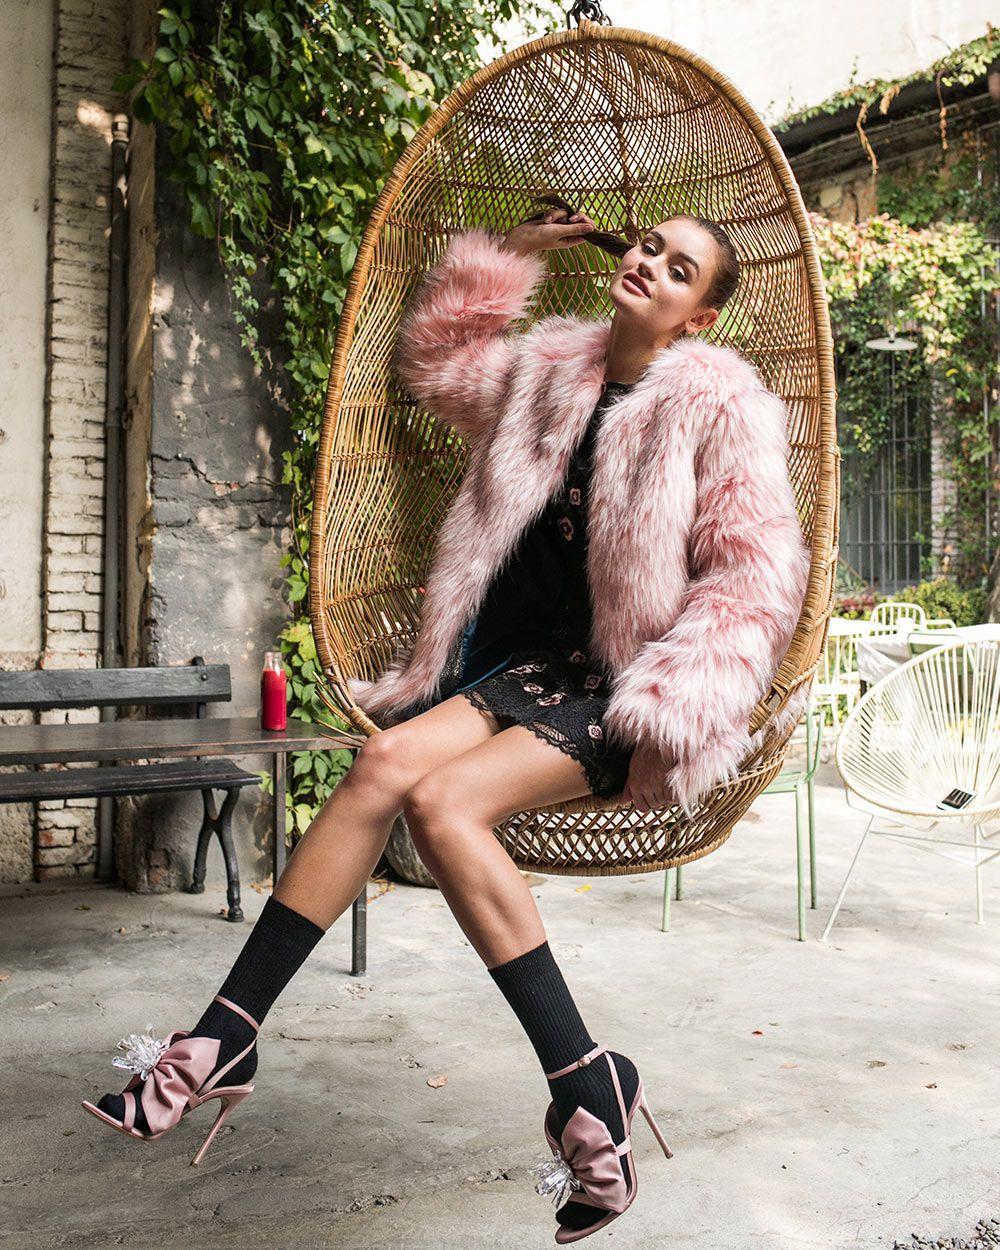 Girl Wearing A Pink Faux Fur Coat Over A Black Mini Dress And Pink High Heels Faux Fur Fashion Fashion Black Dress With Heels [ 1250 x 1000 Pixel ]